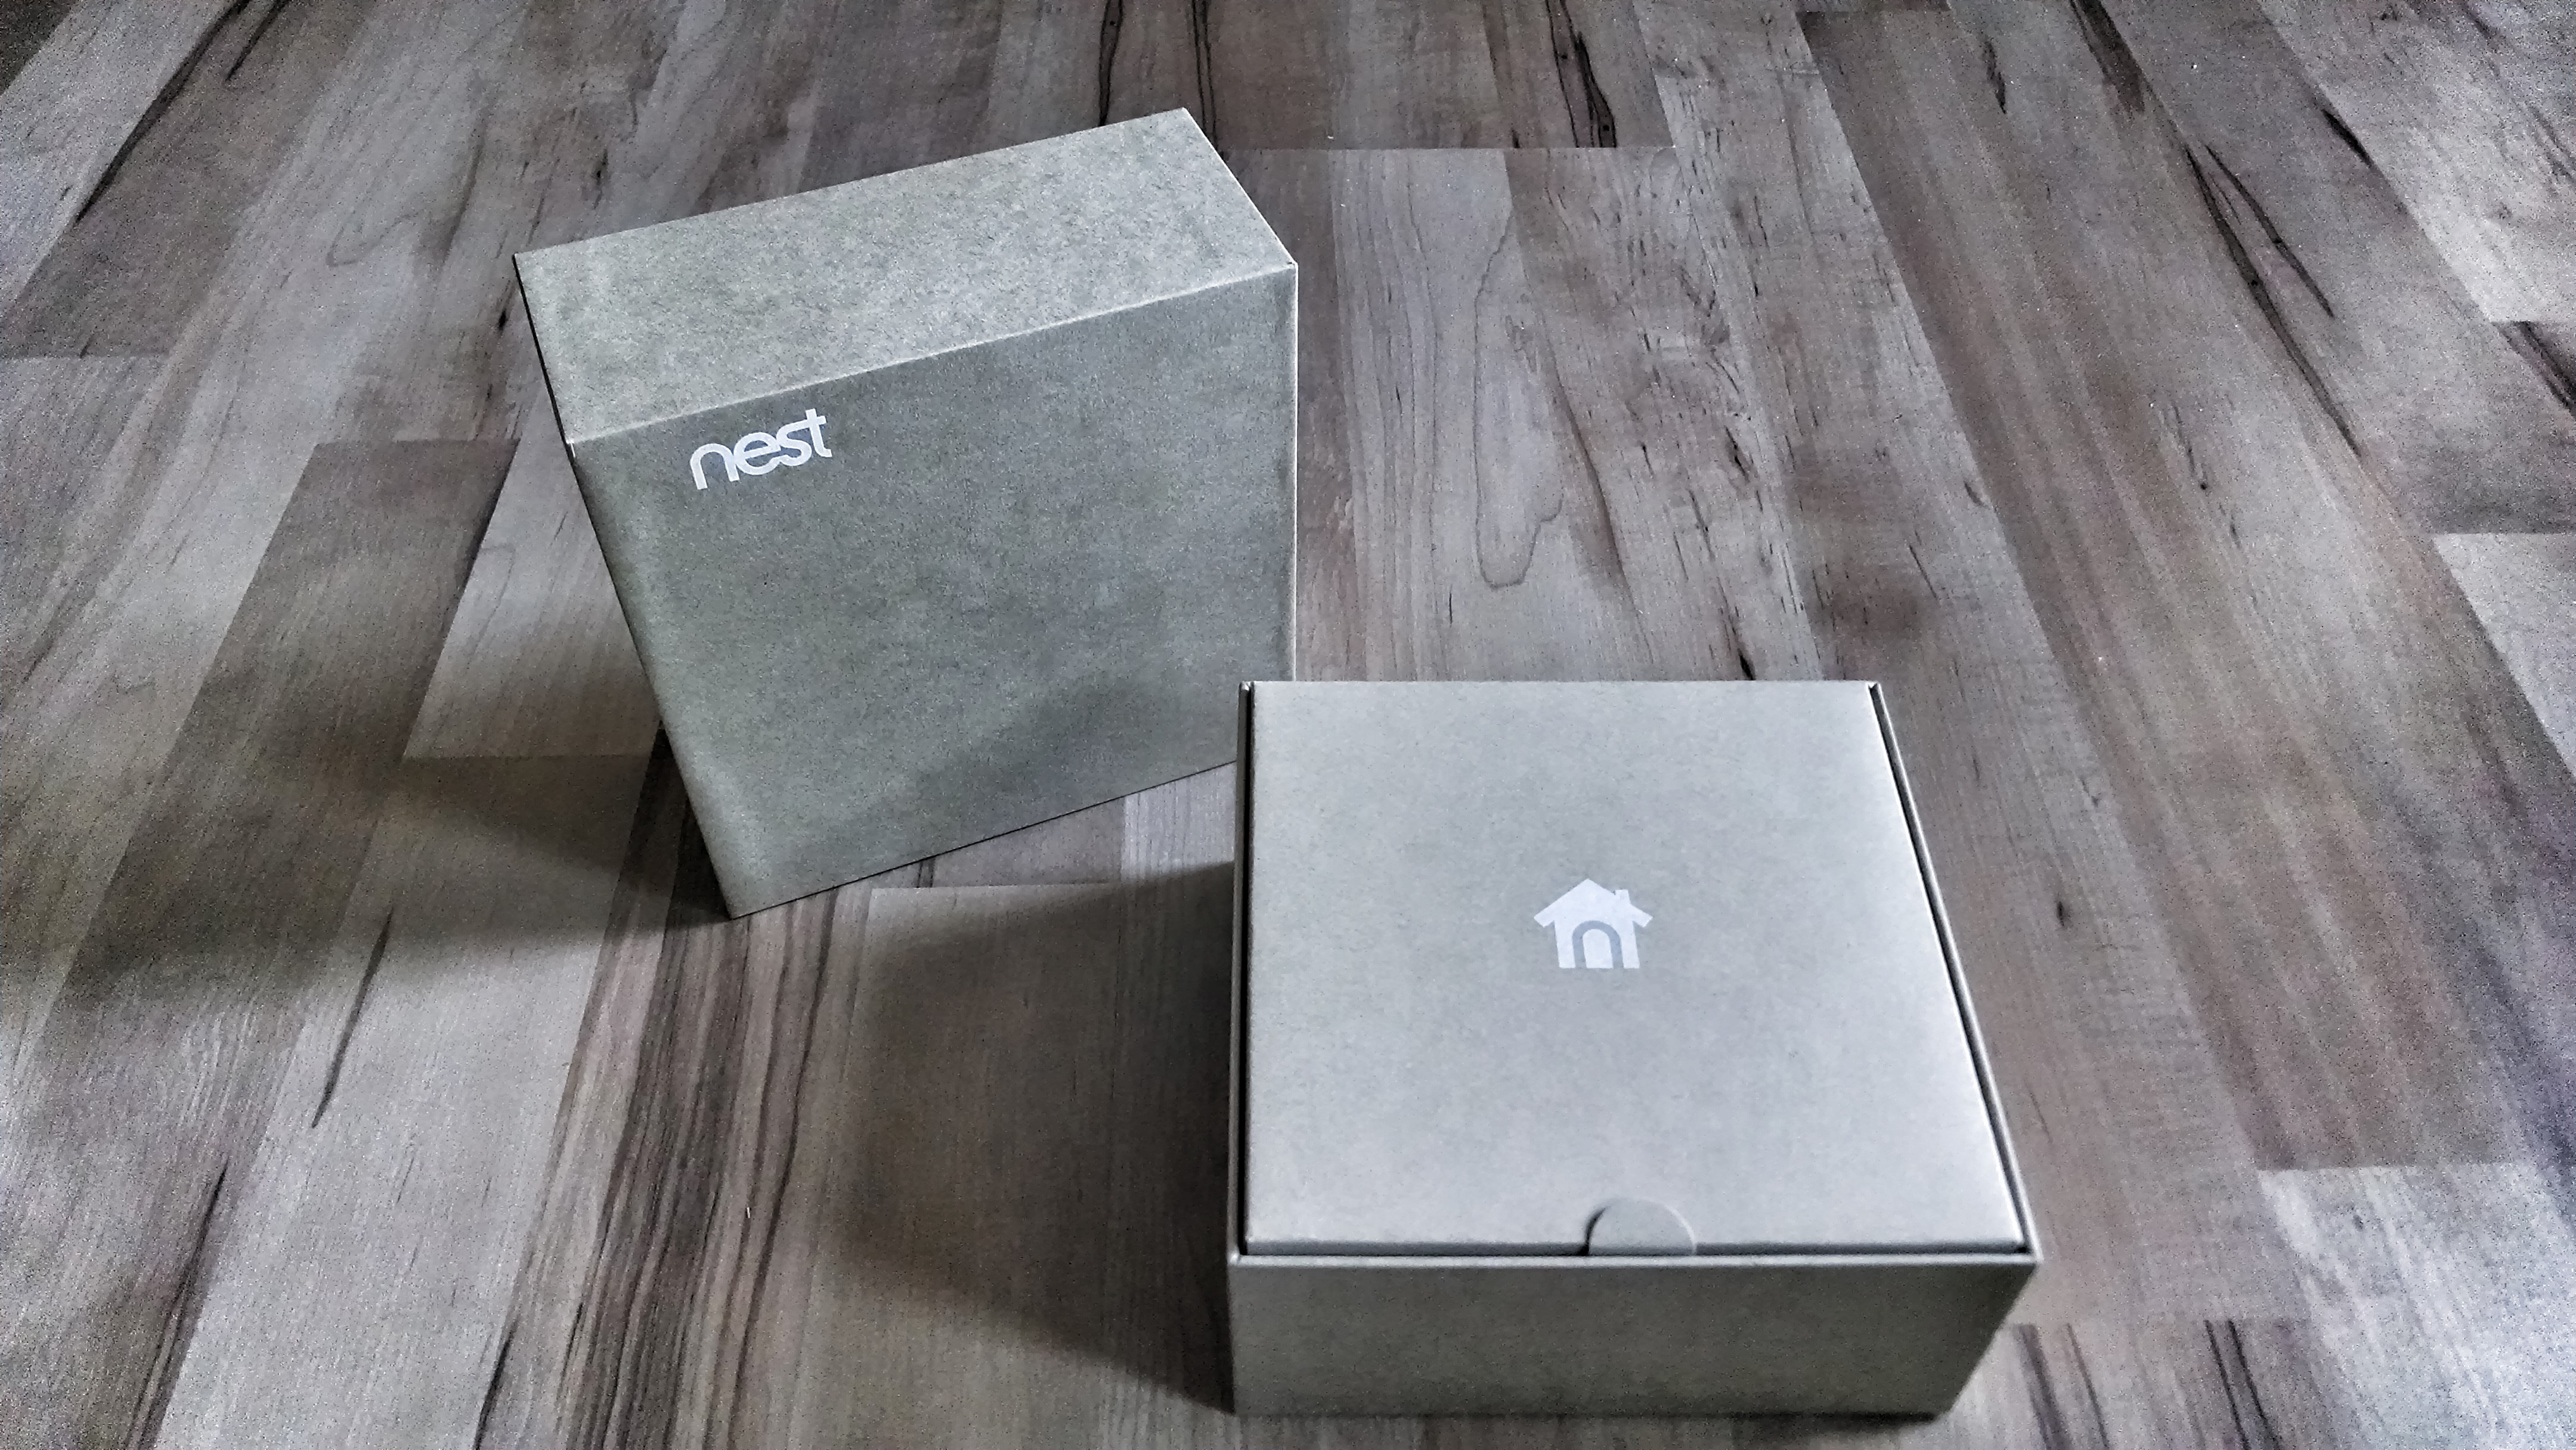 The Nest Protect  U2013 Smoke   Co Alarm  About  Unboxed And